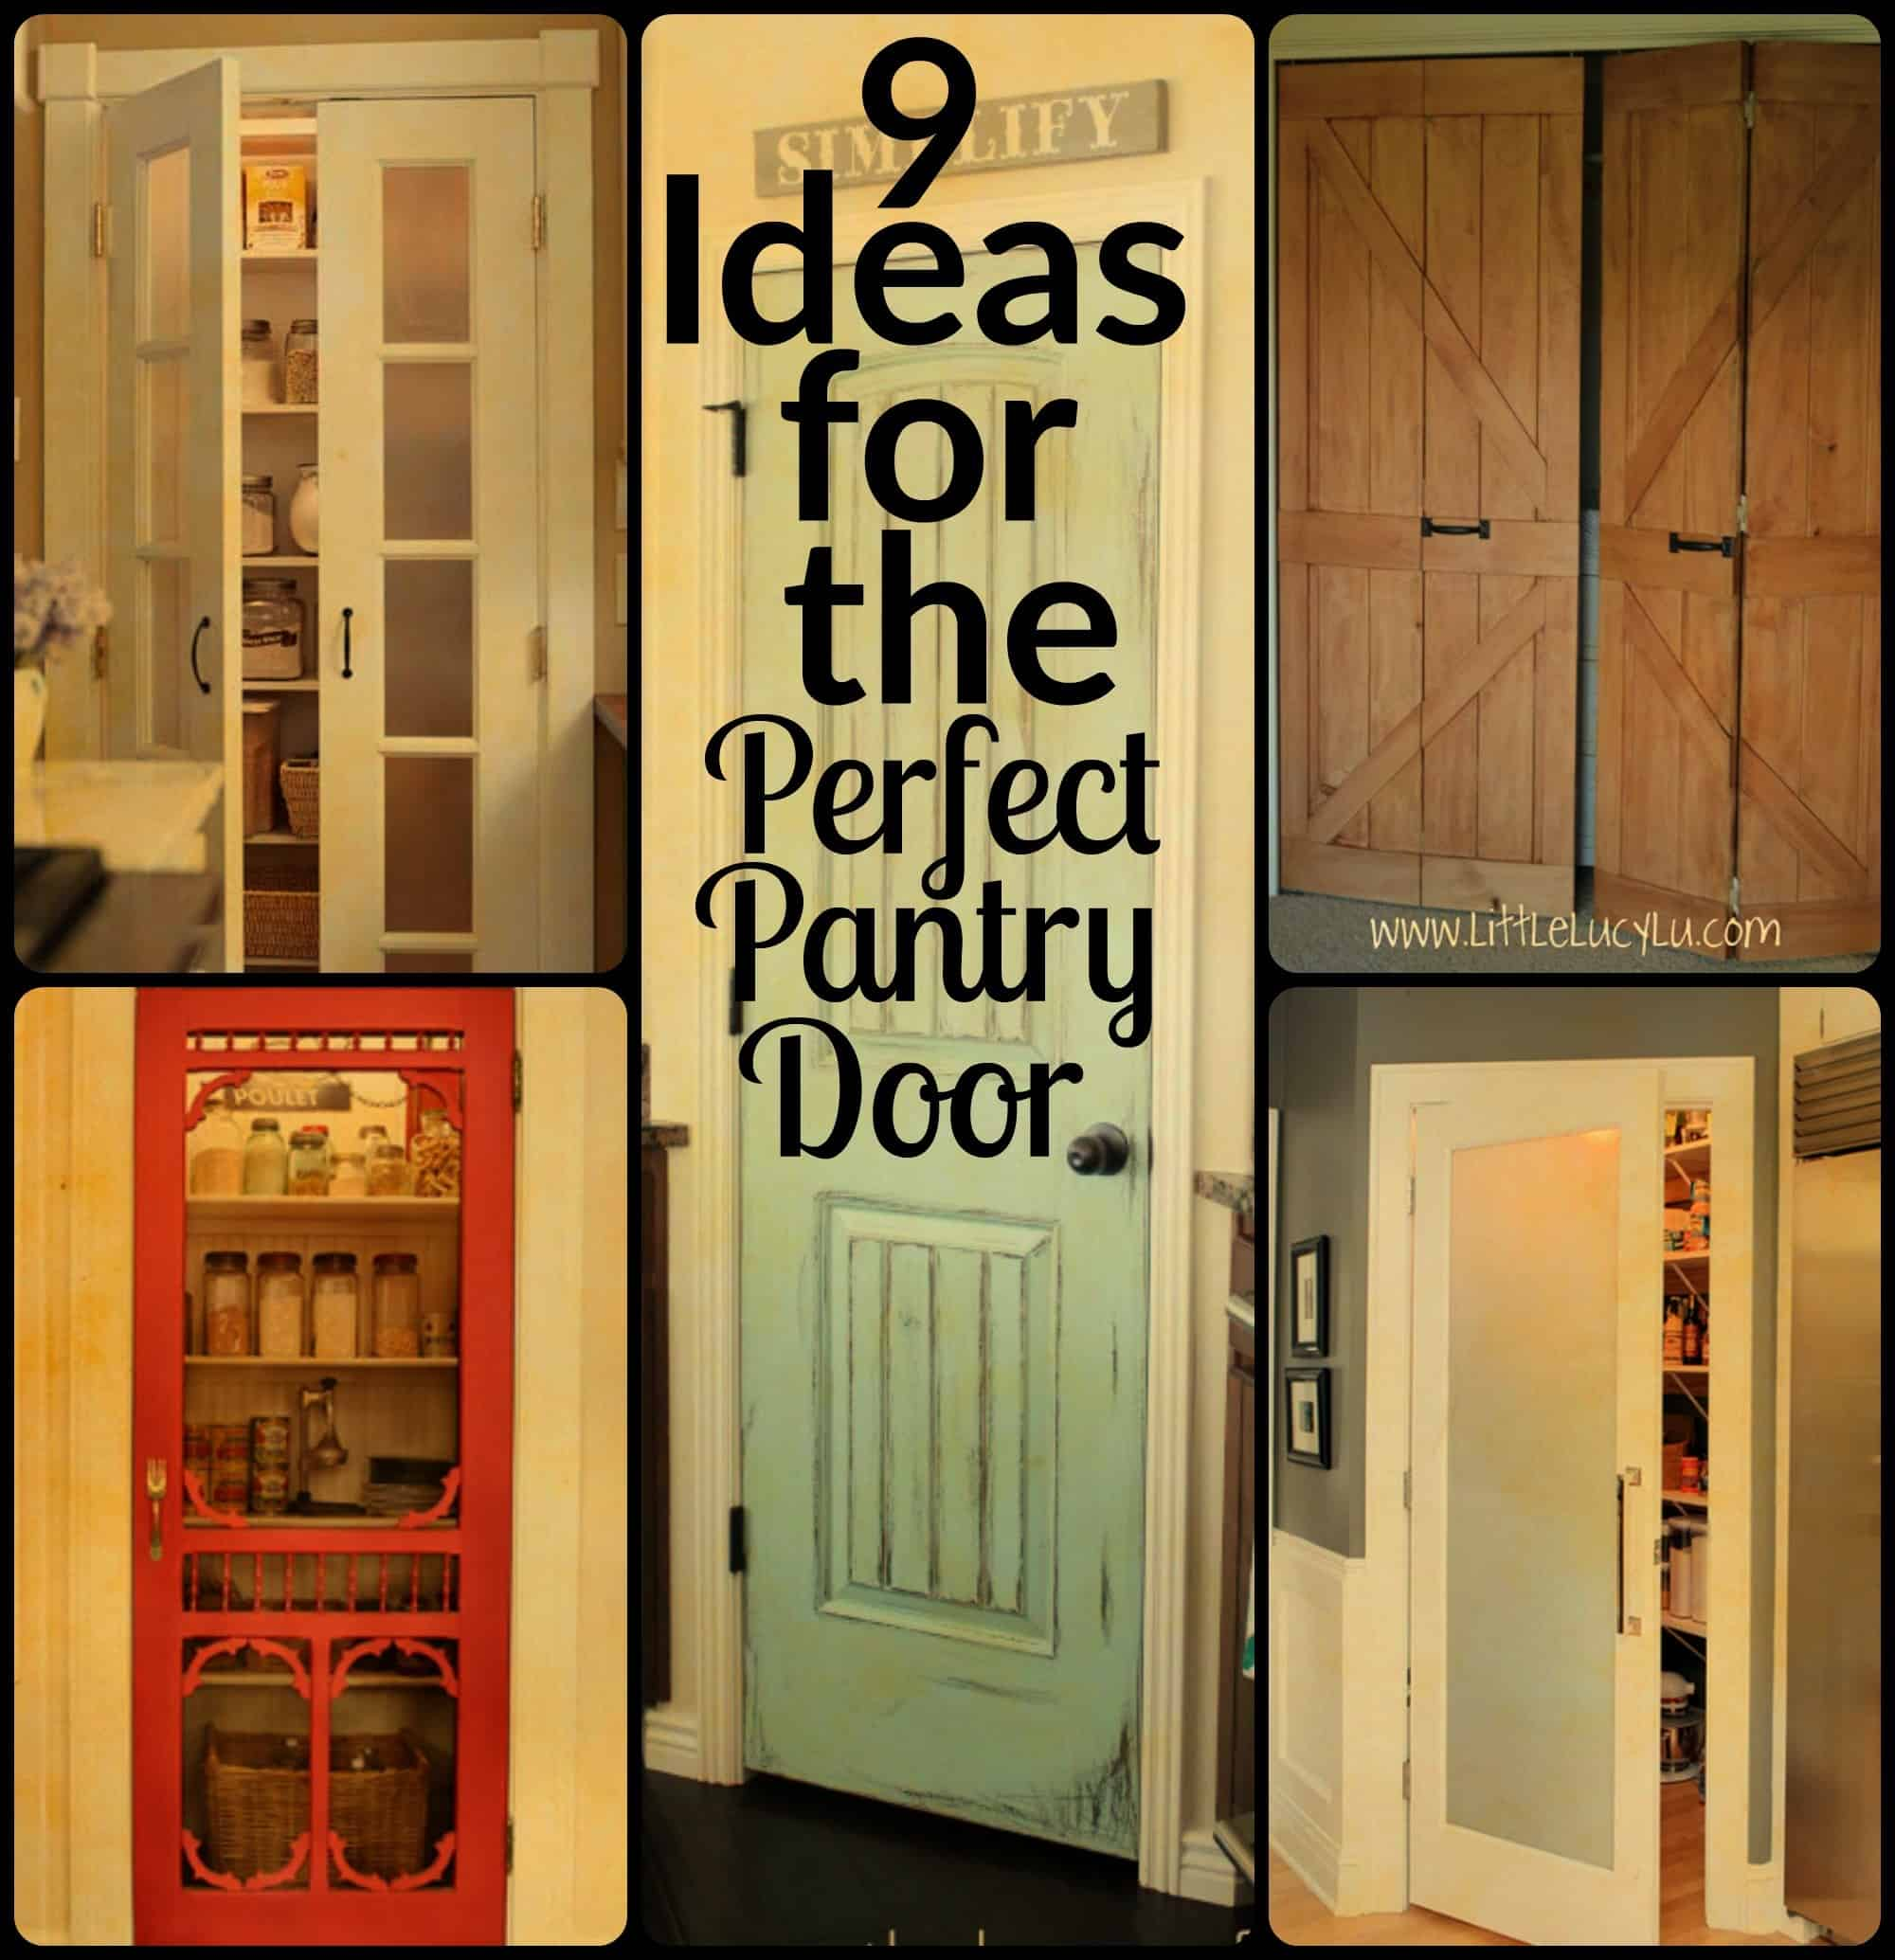 Kitchen Pantry Door Options: 9 Ideas For The Perfect Pantry Door